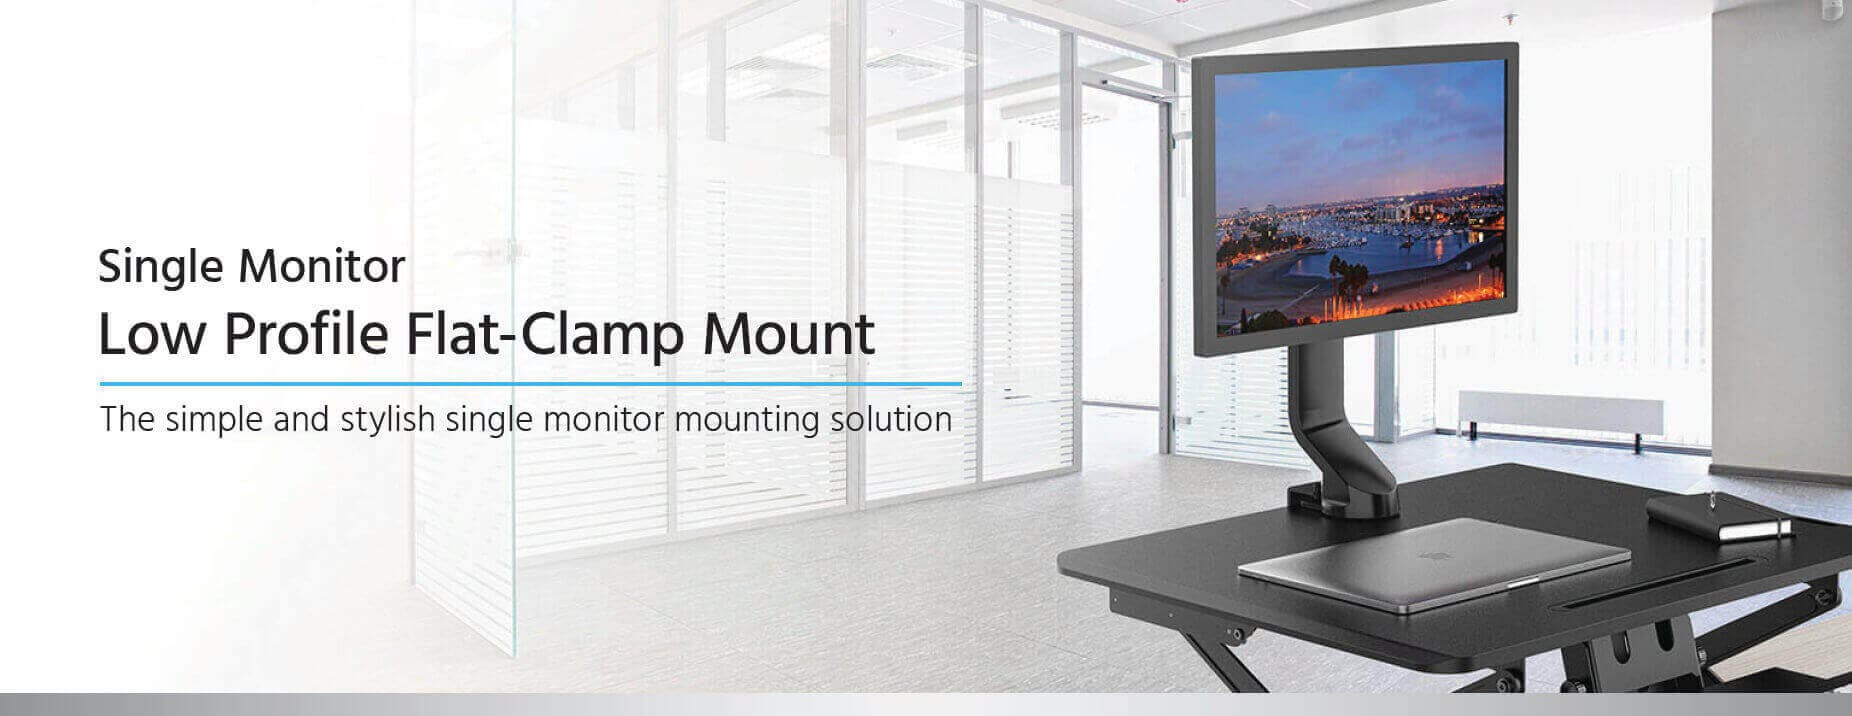 Low Profile Flat-Clamp Mount